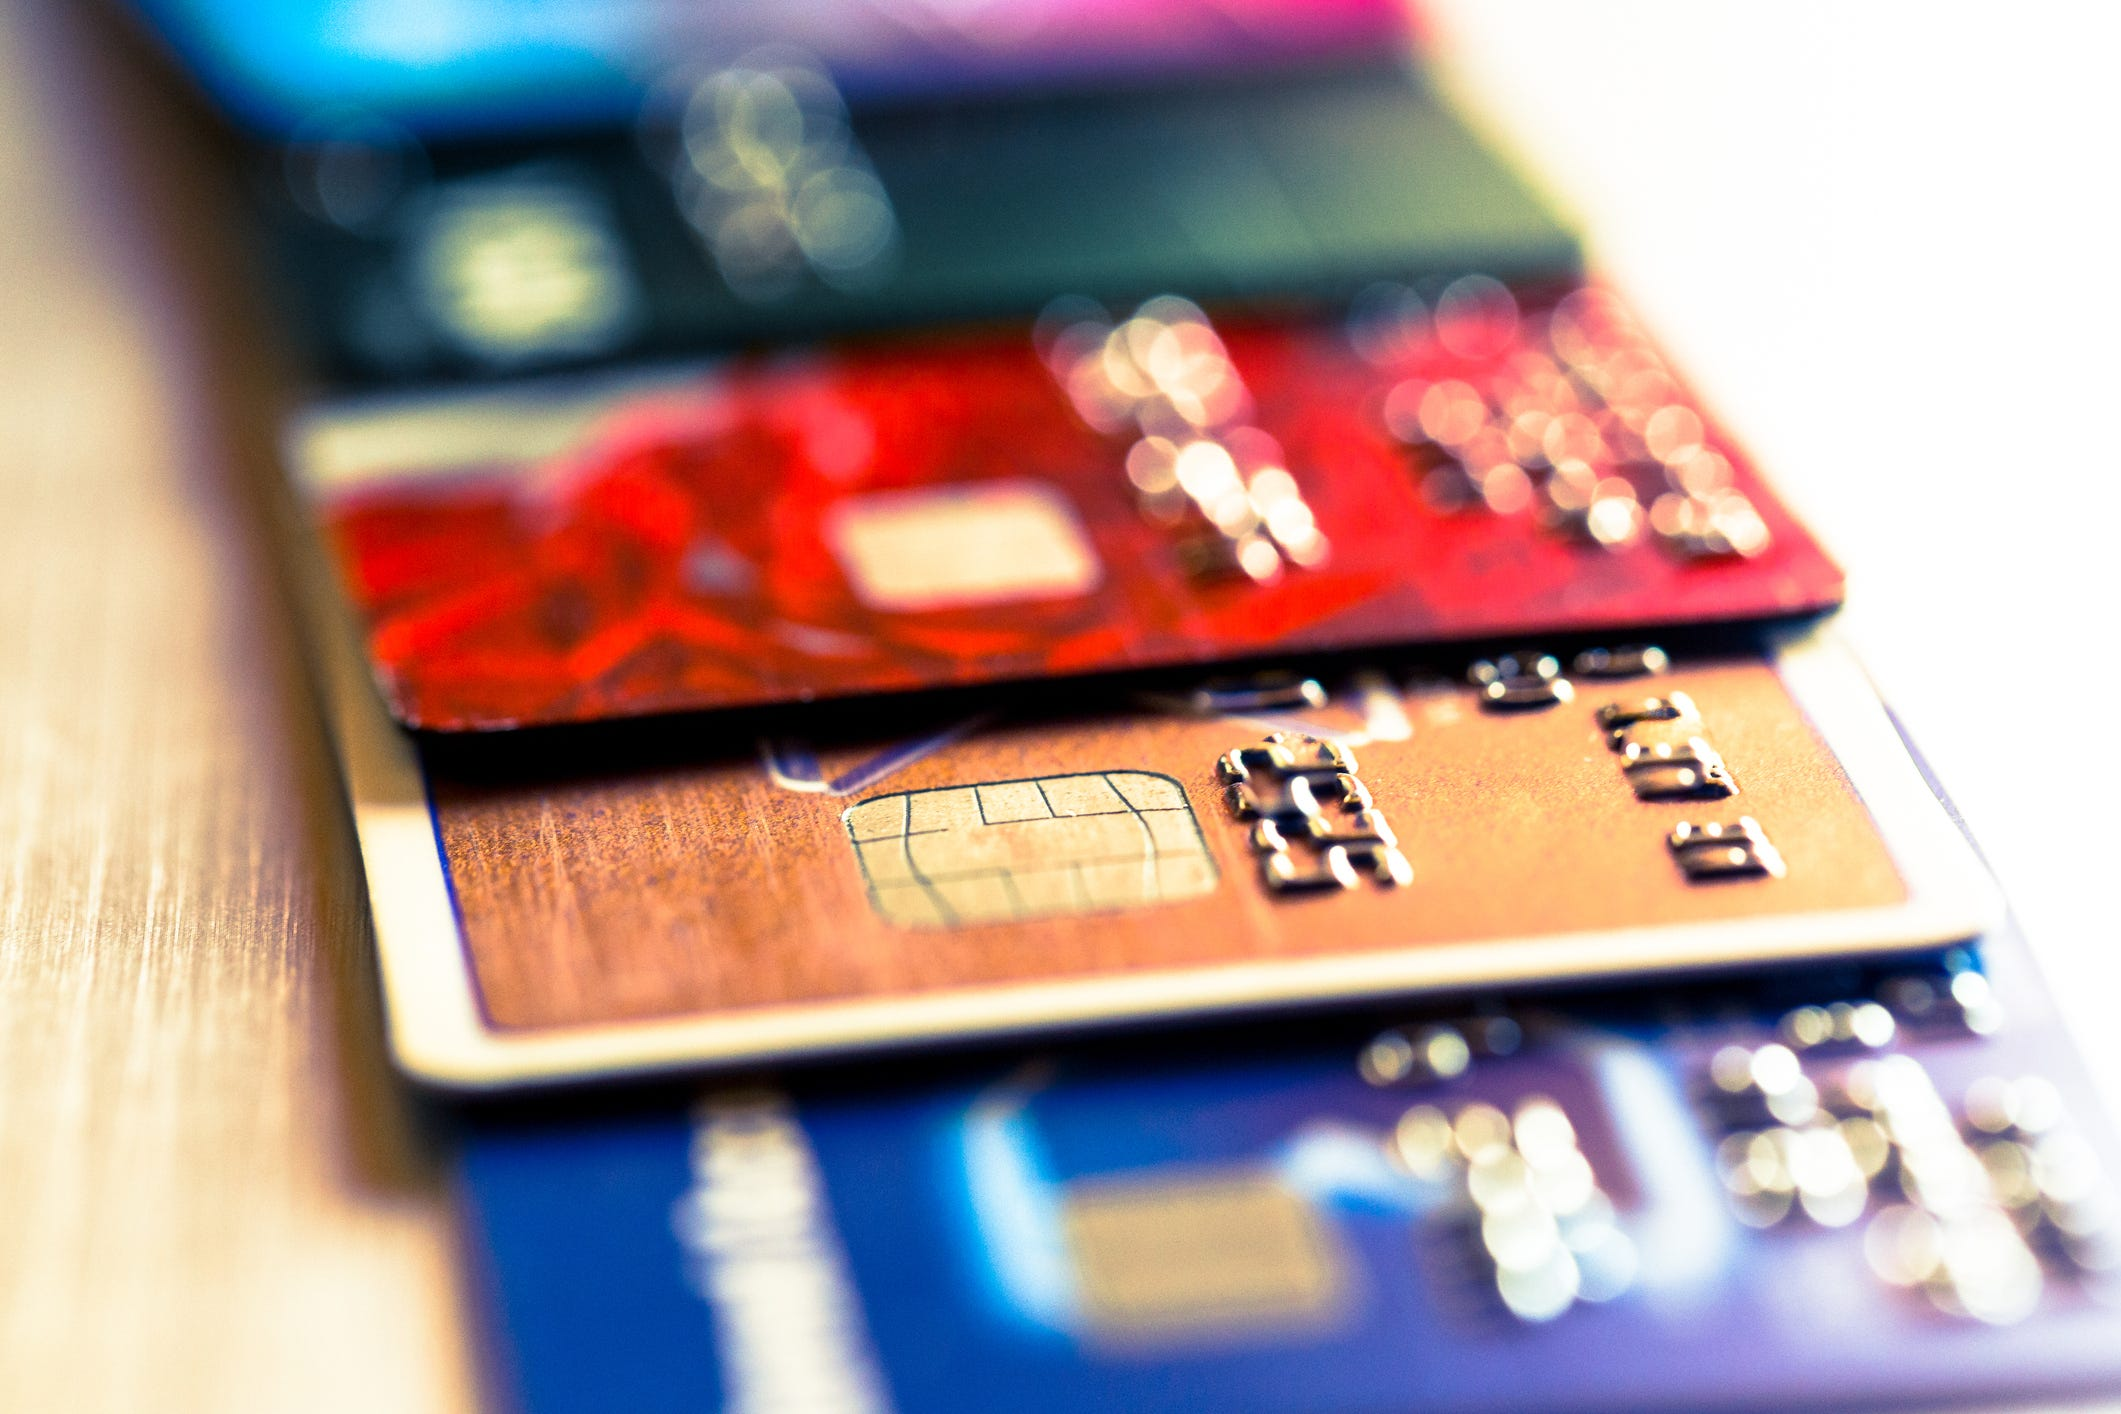 Credit card rules users of Visa, Mastercard, Capital One must follow